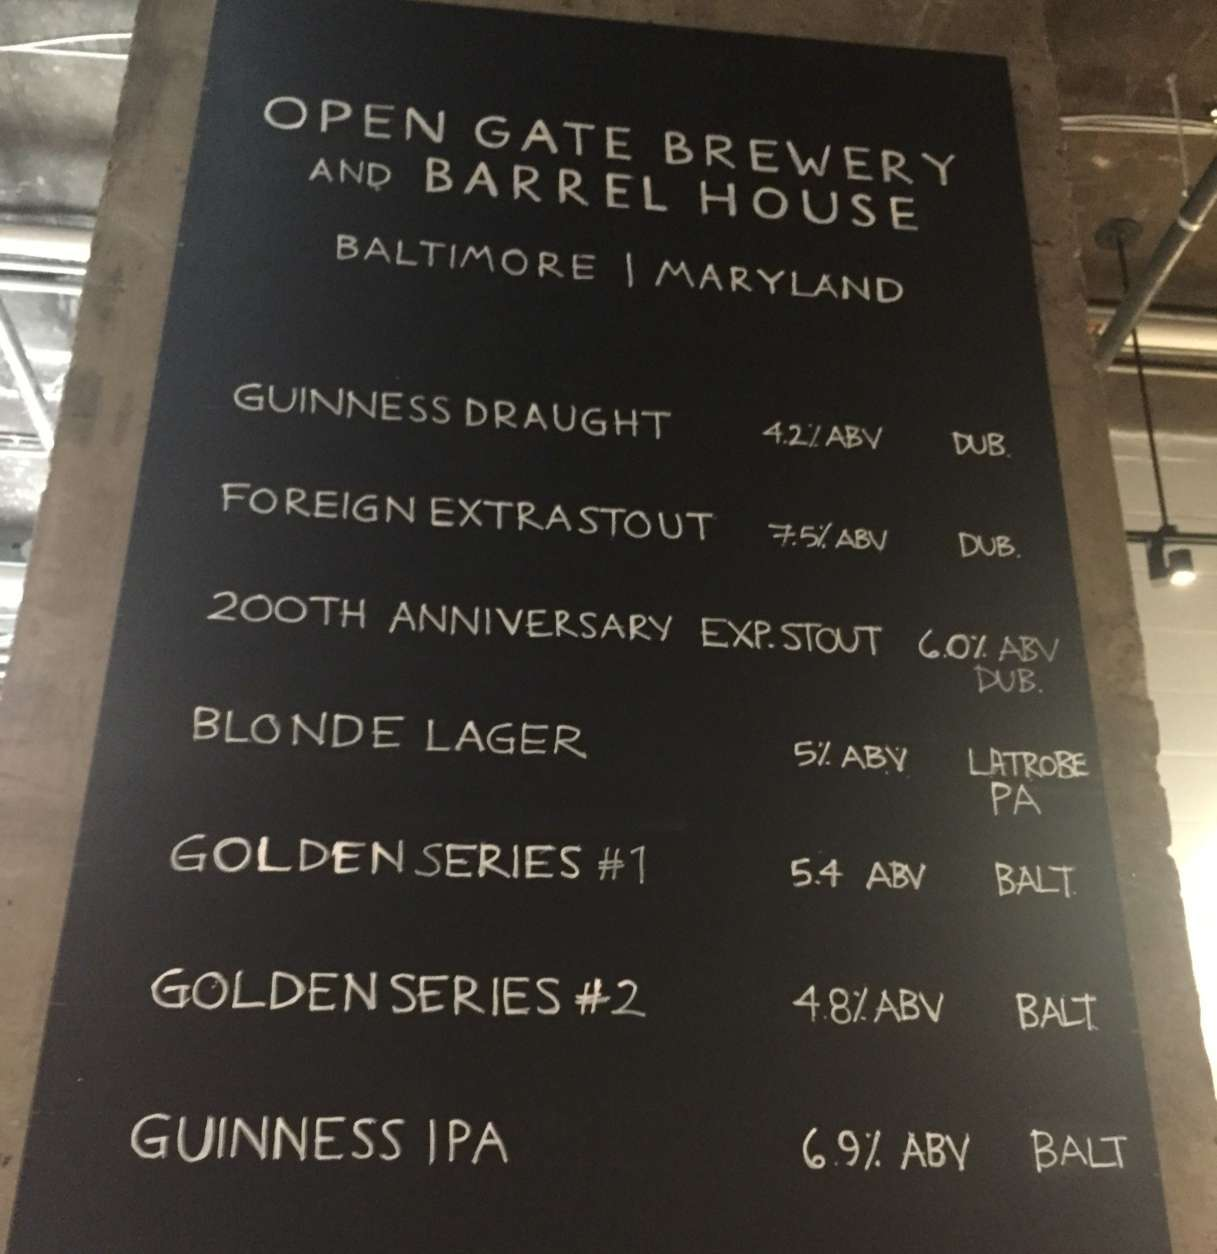 An IPA and two blondes are among the on-site offerings in the taproom. (WTOP/Jack Pointer)